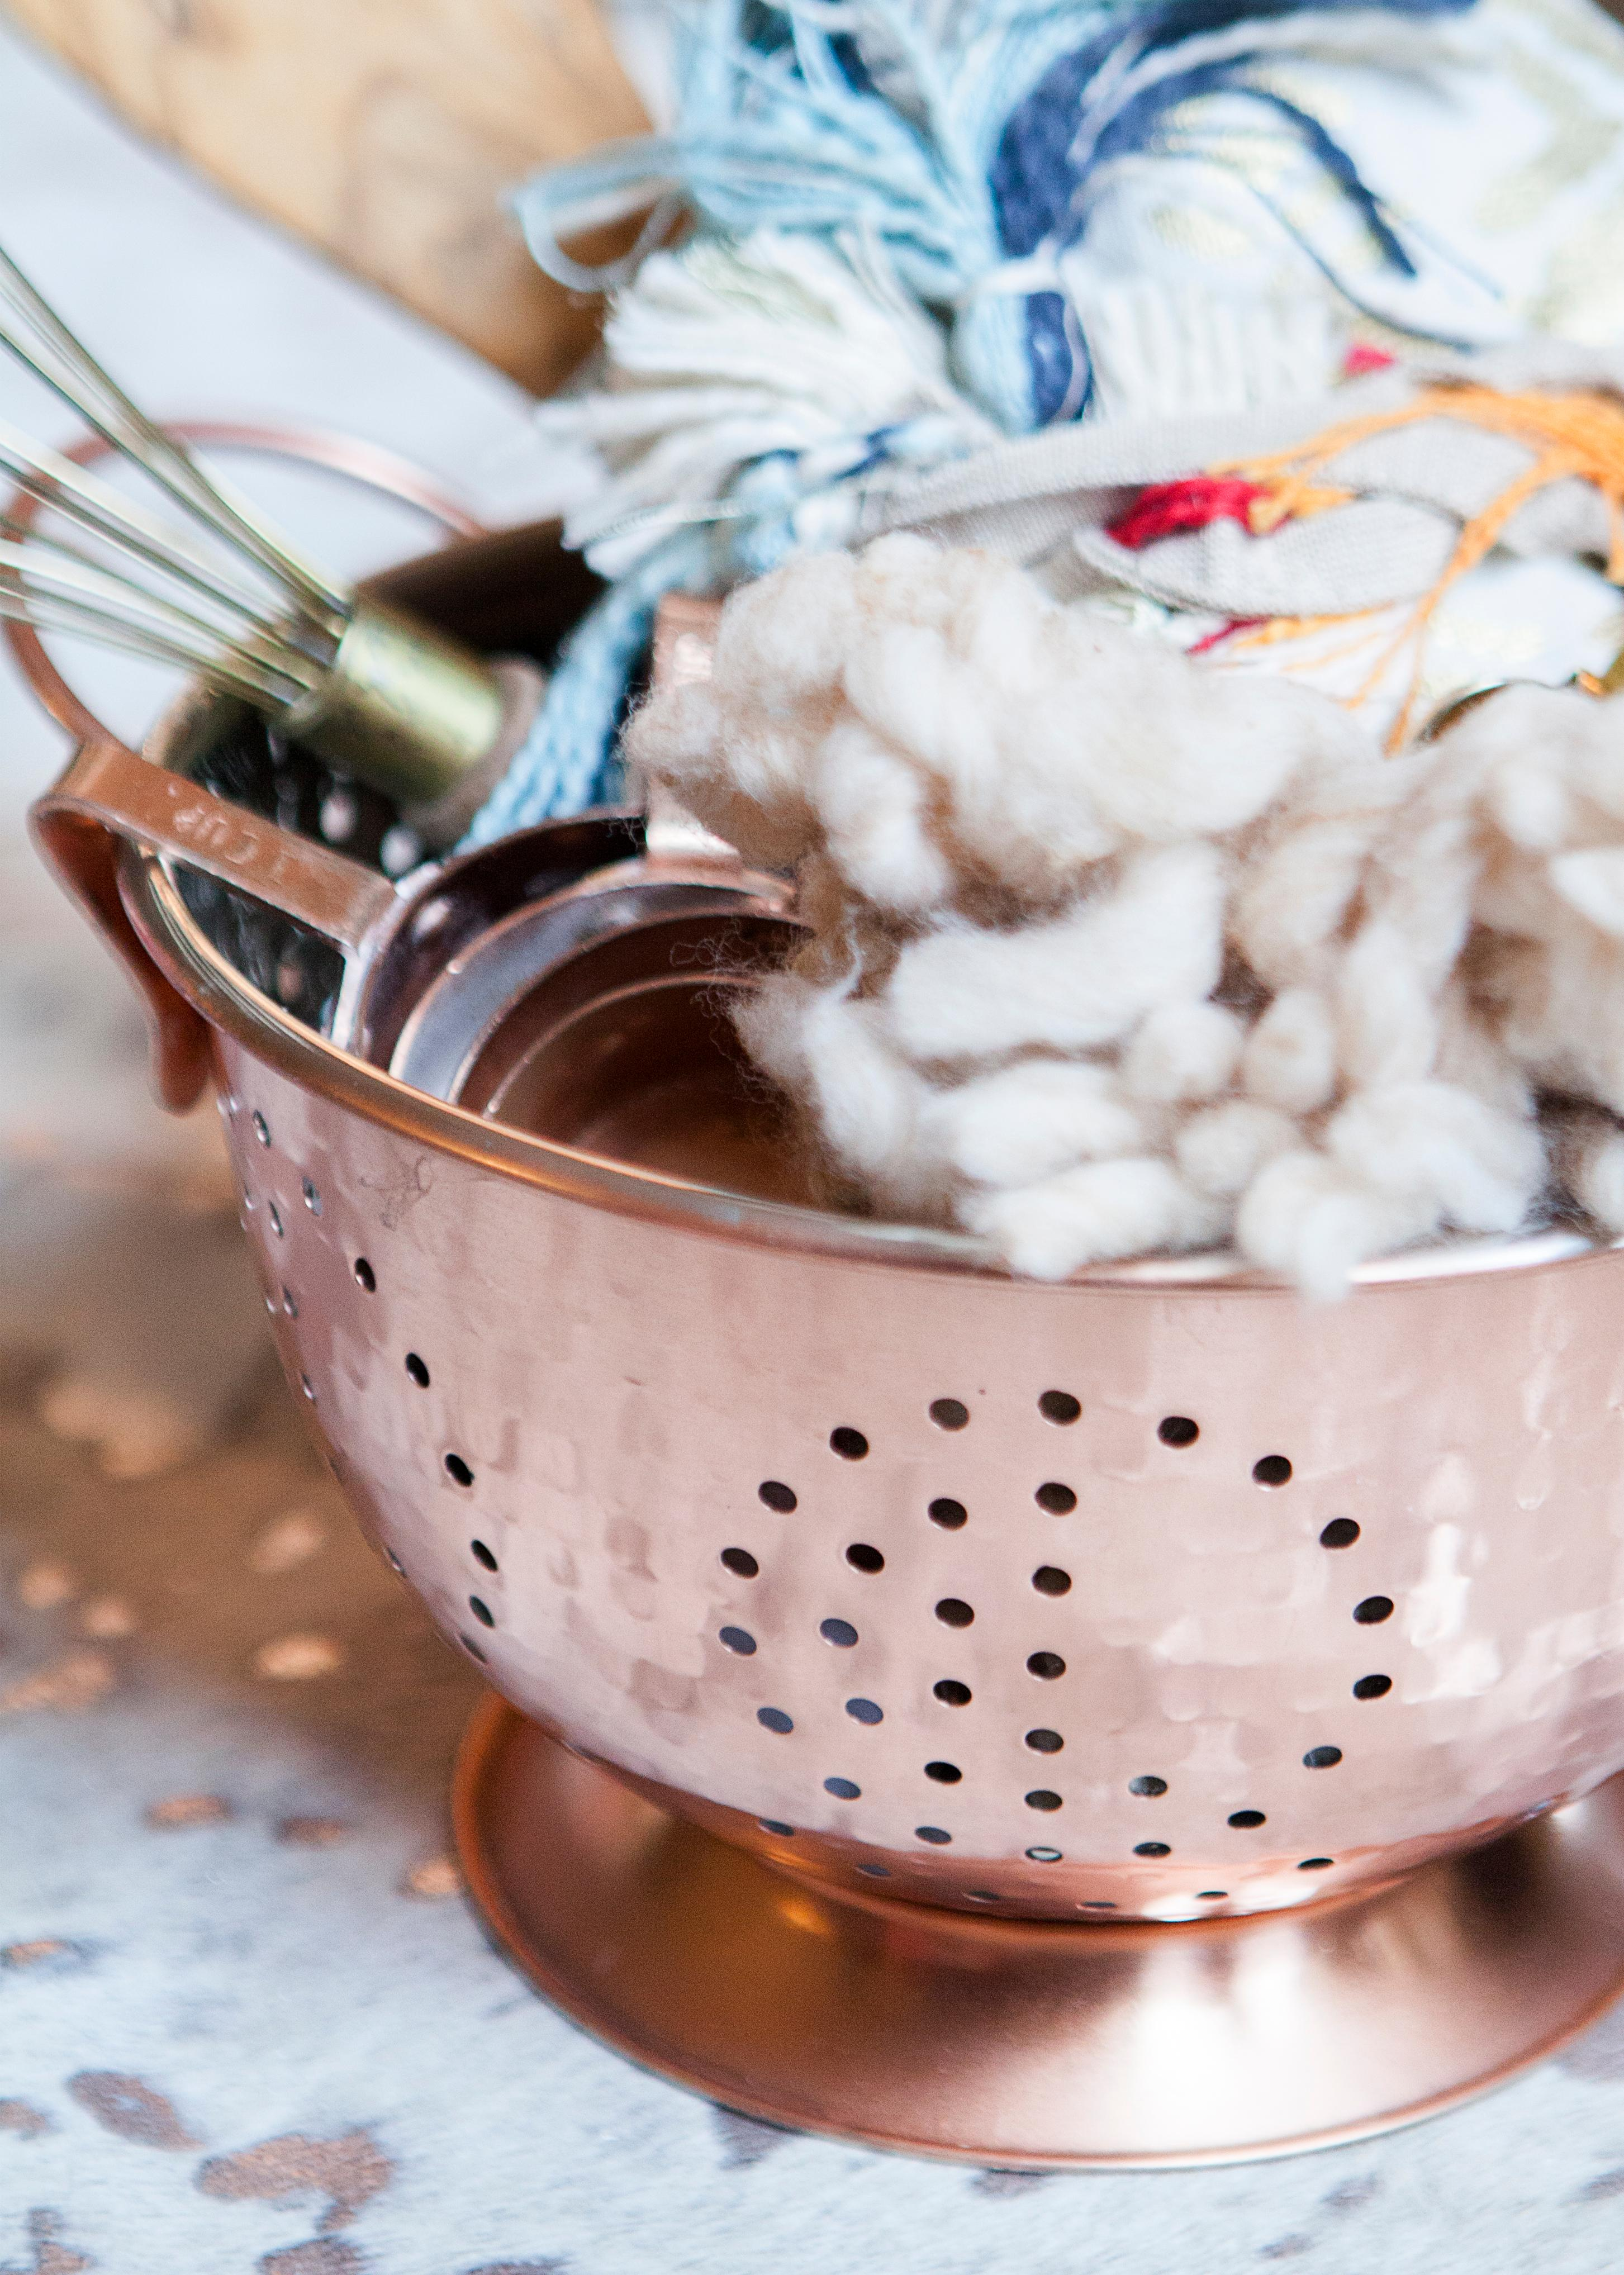 Stuff kitchen gifts in a colander or mixing bowl. (Image: Ashley Hafstead)